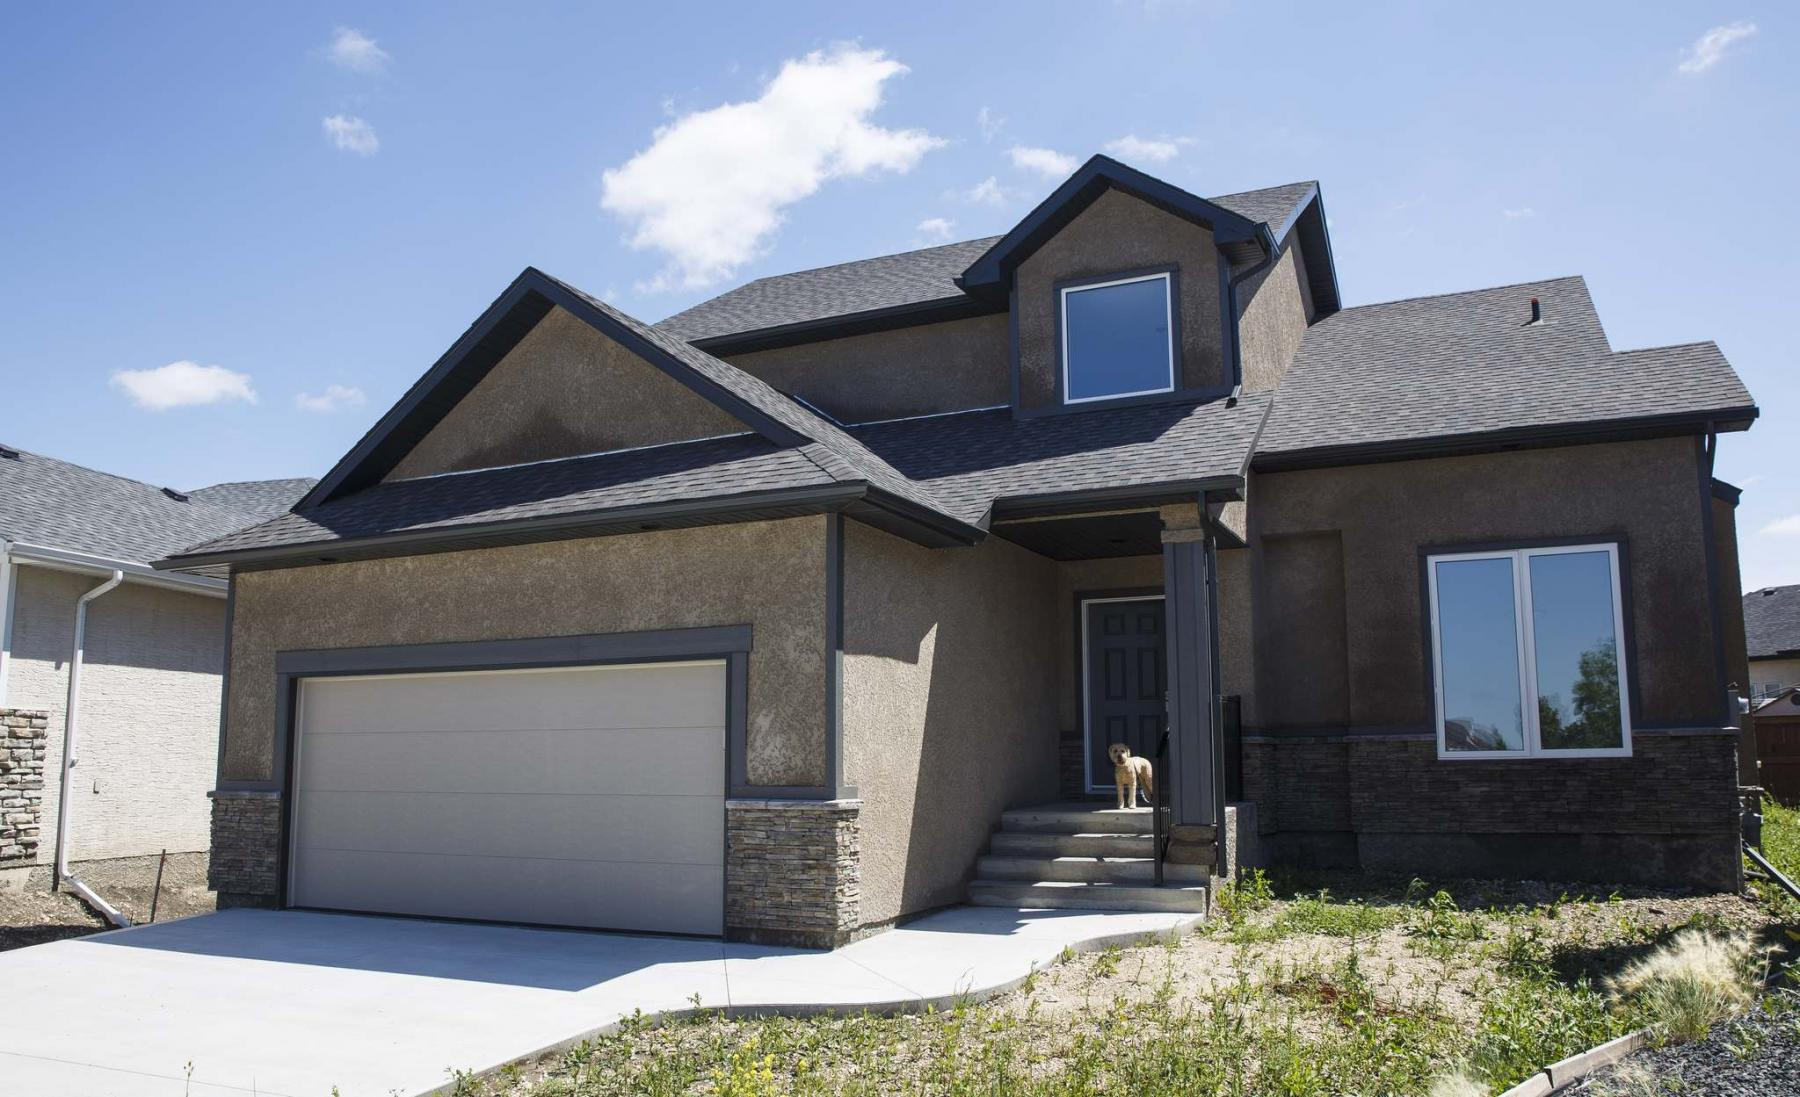 <p>photos by MIKE DEAL / WINNIPEG FREE PRESS</p><p>Built on a pie-shaped lot, this new Parkhill Homes property at 23 Tellier Place in South Pointe is loaded with quality finishes and offers functional livability in a generous space.</p></p>